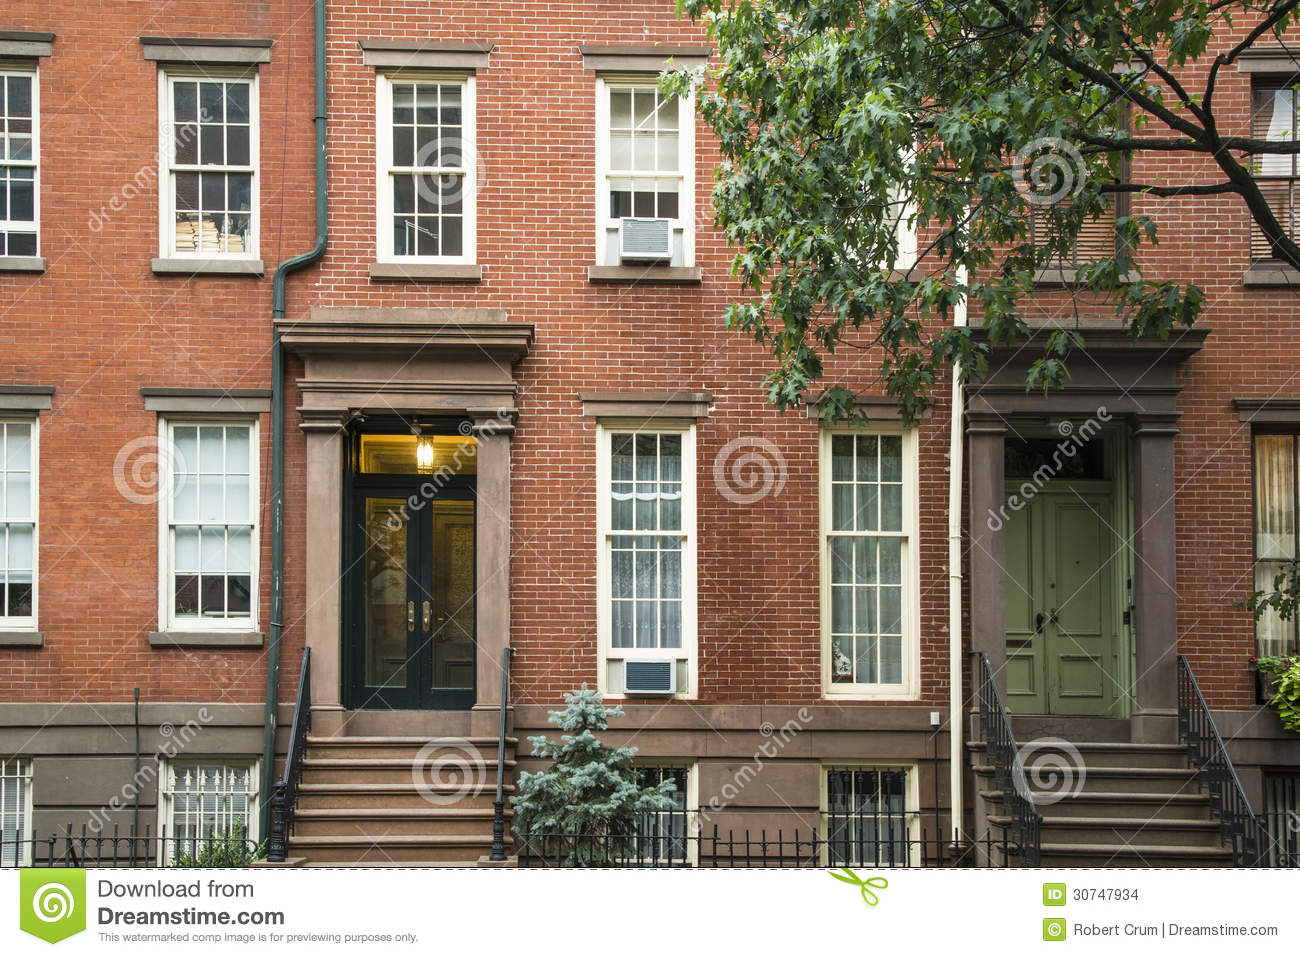 Greenwich village apartment buildings new york city stock for Nyc greenwich village apartments